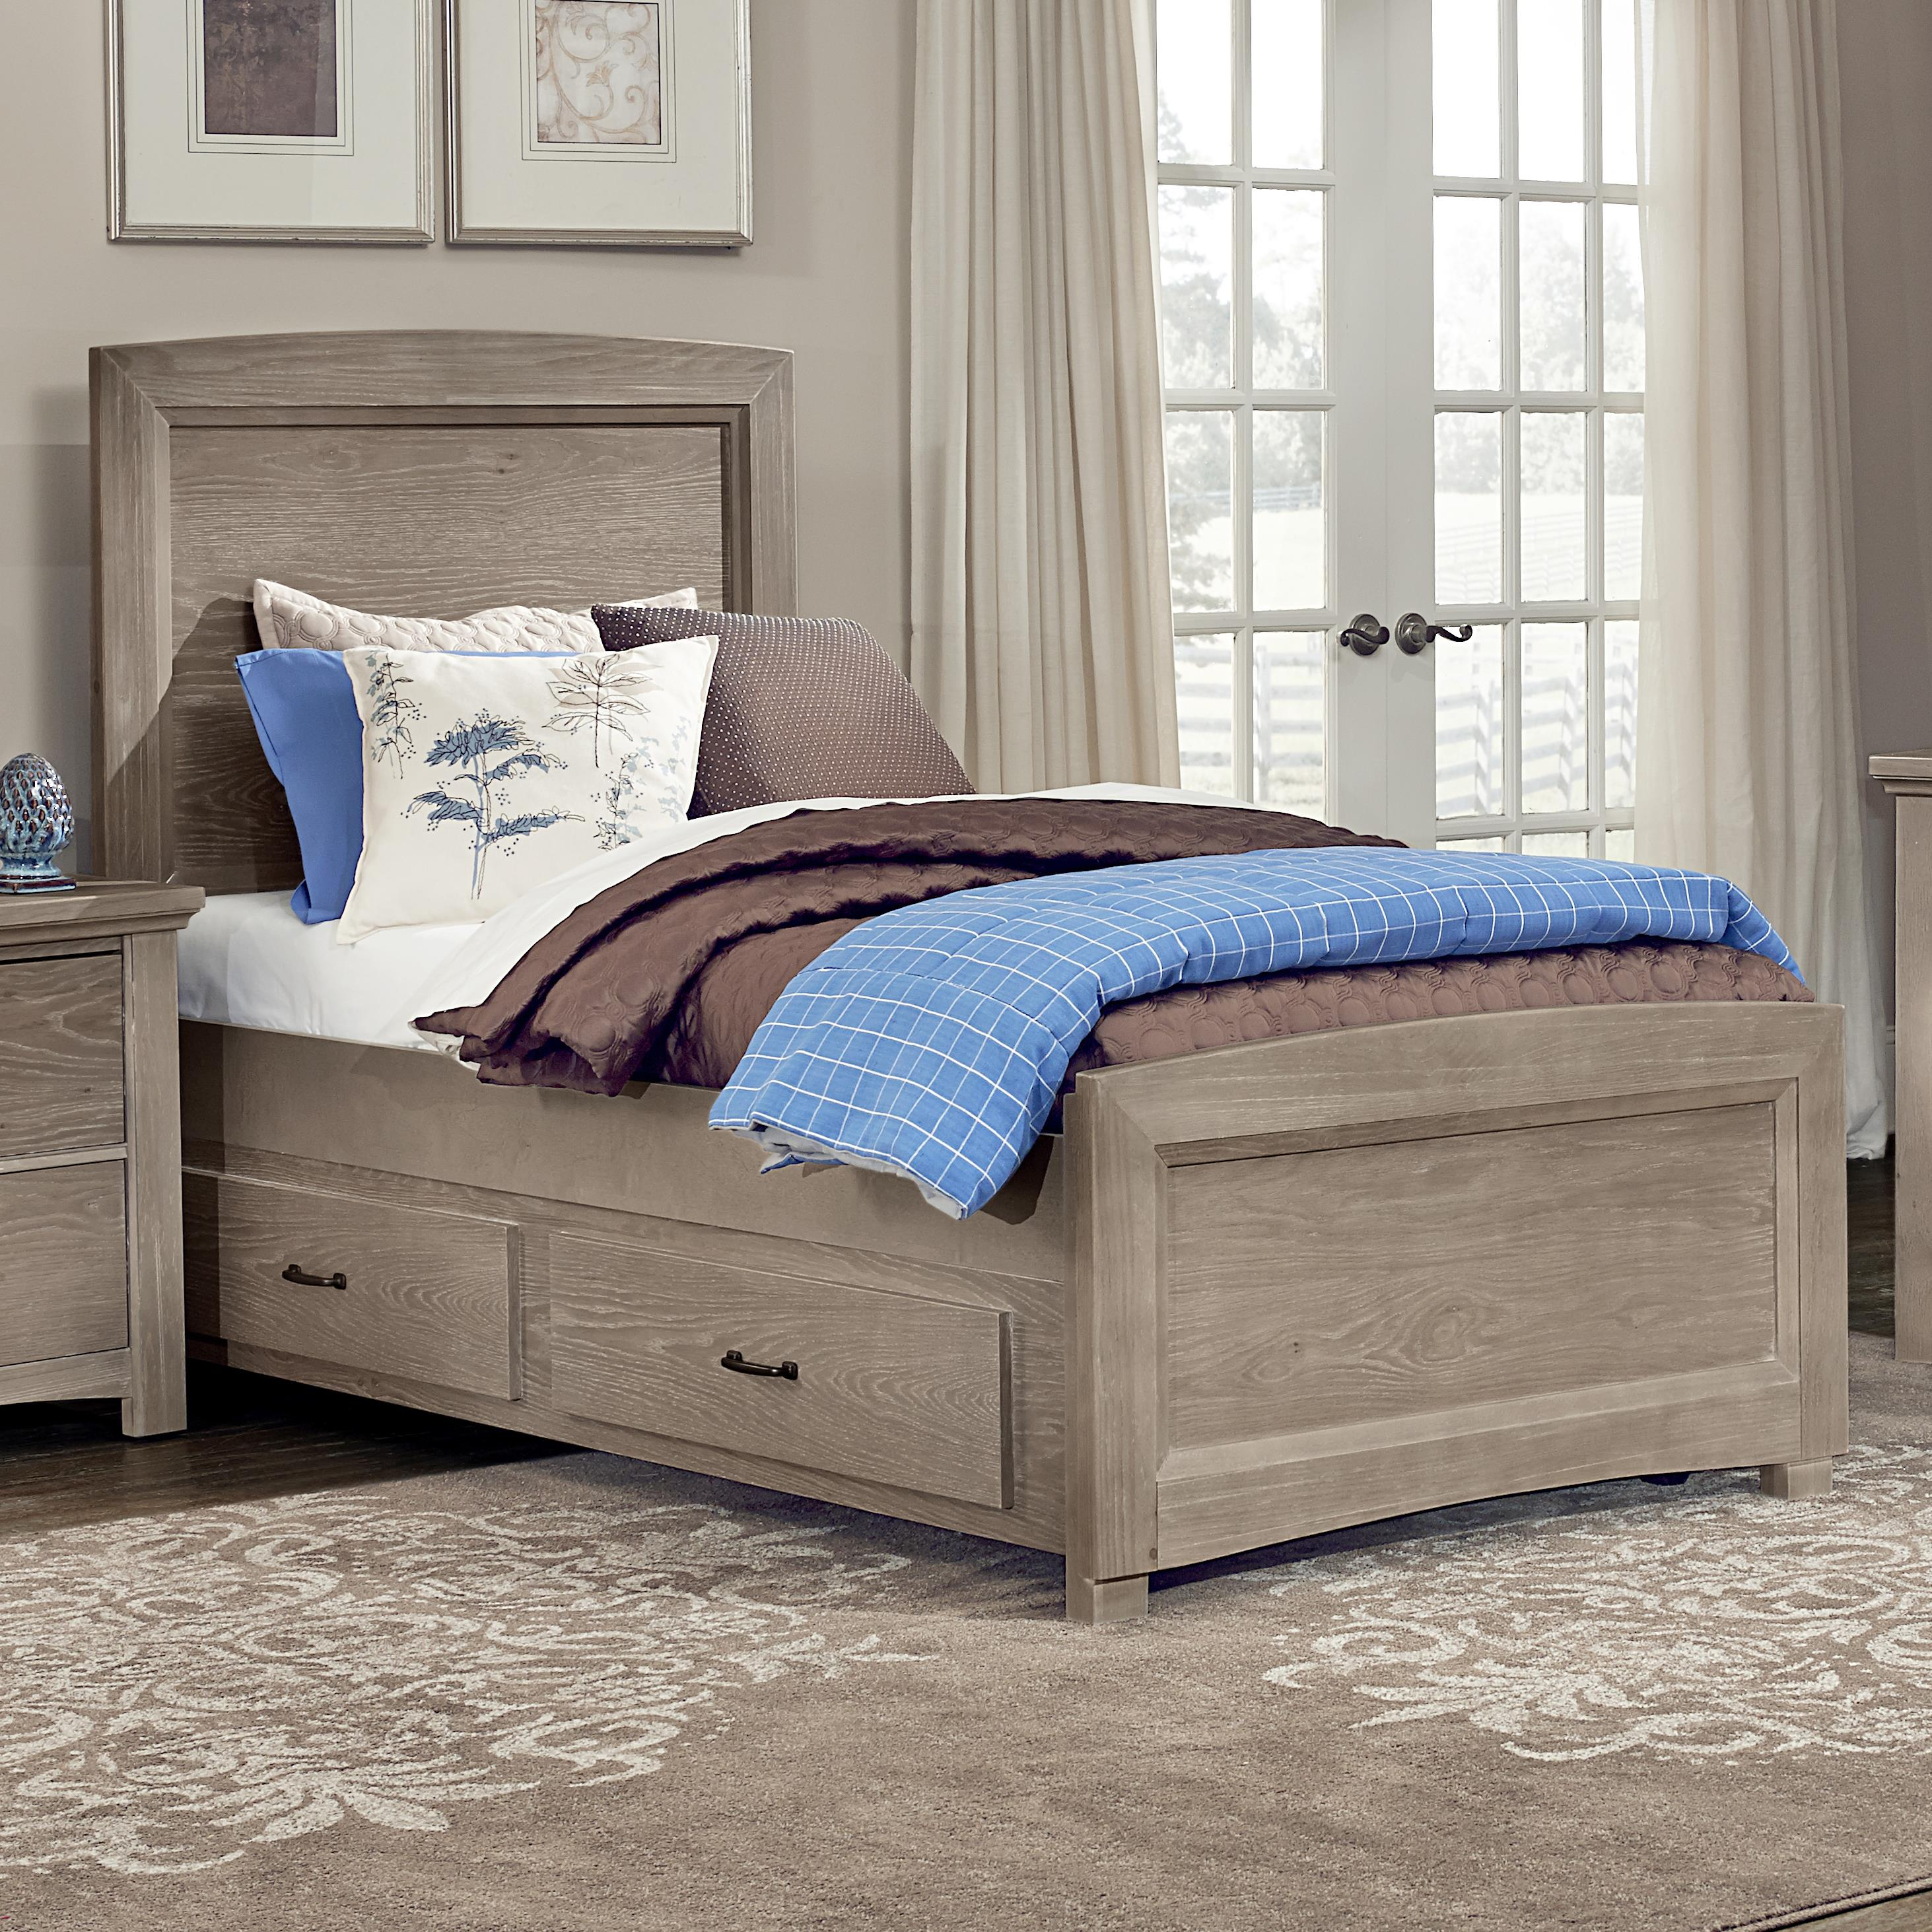 Vaughan Bassett Transitions Twin Panel Bed with Trundle - Item Number: BB61-338+833+900+822A+822B+333T